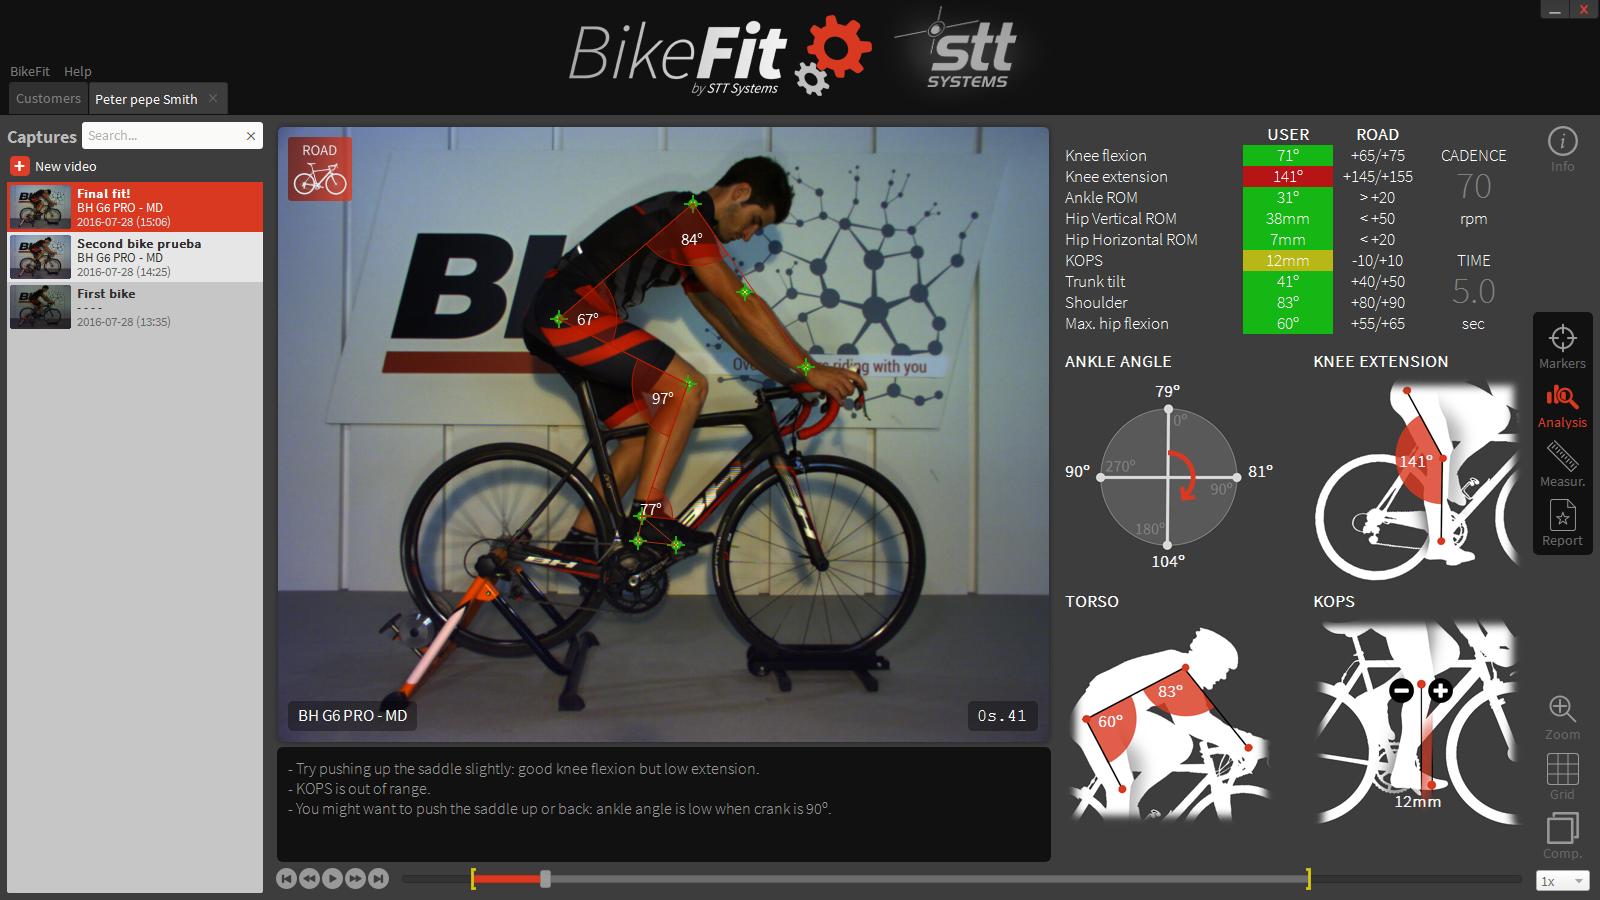 BikeFit by STT Systems.png